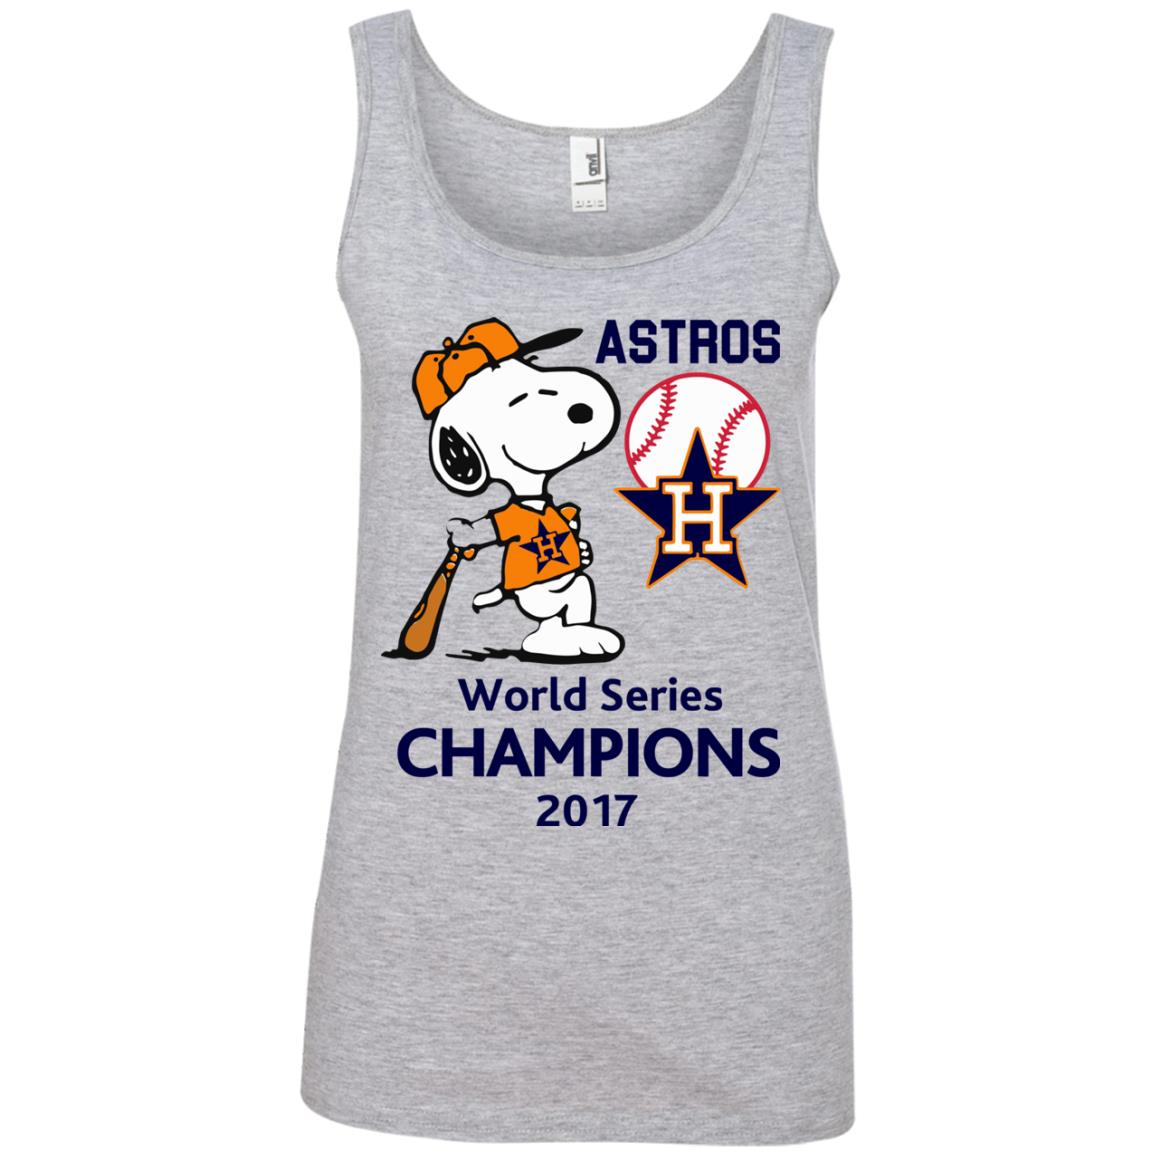 image 959 - Snoopy Astros World Series Champions Shirt, Sweater, Hoodie